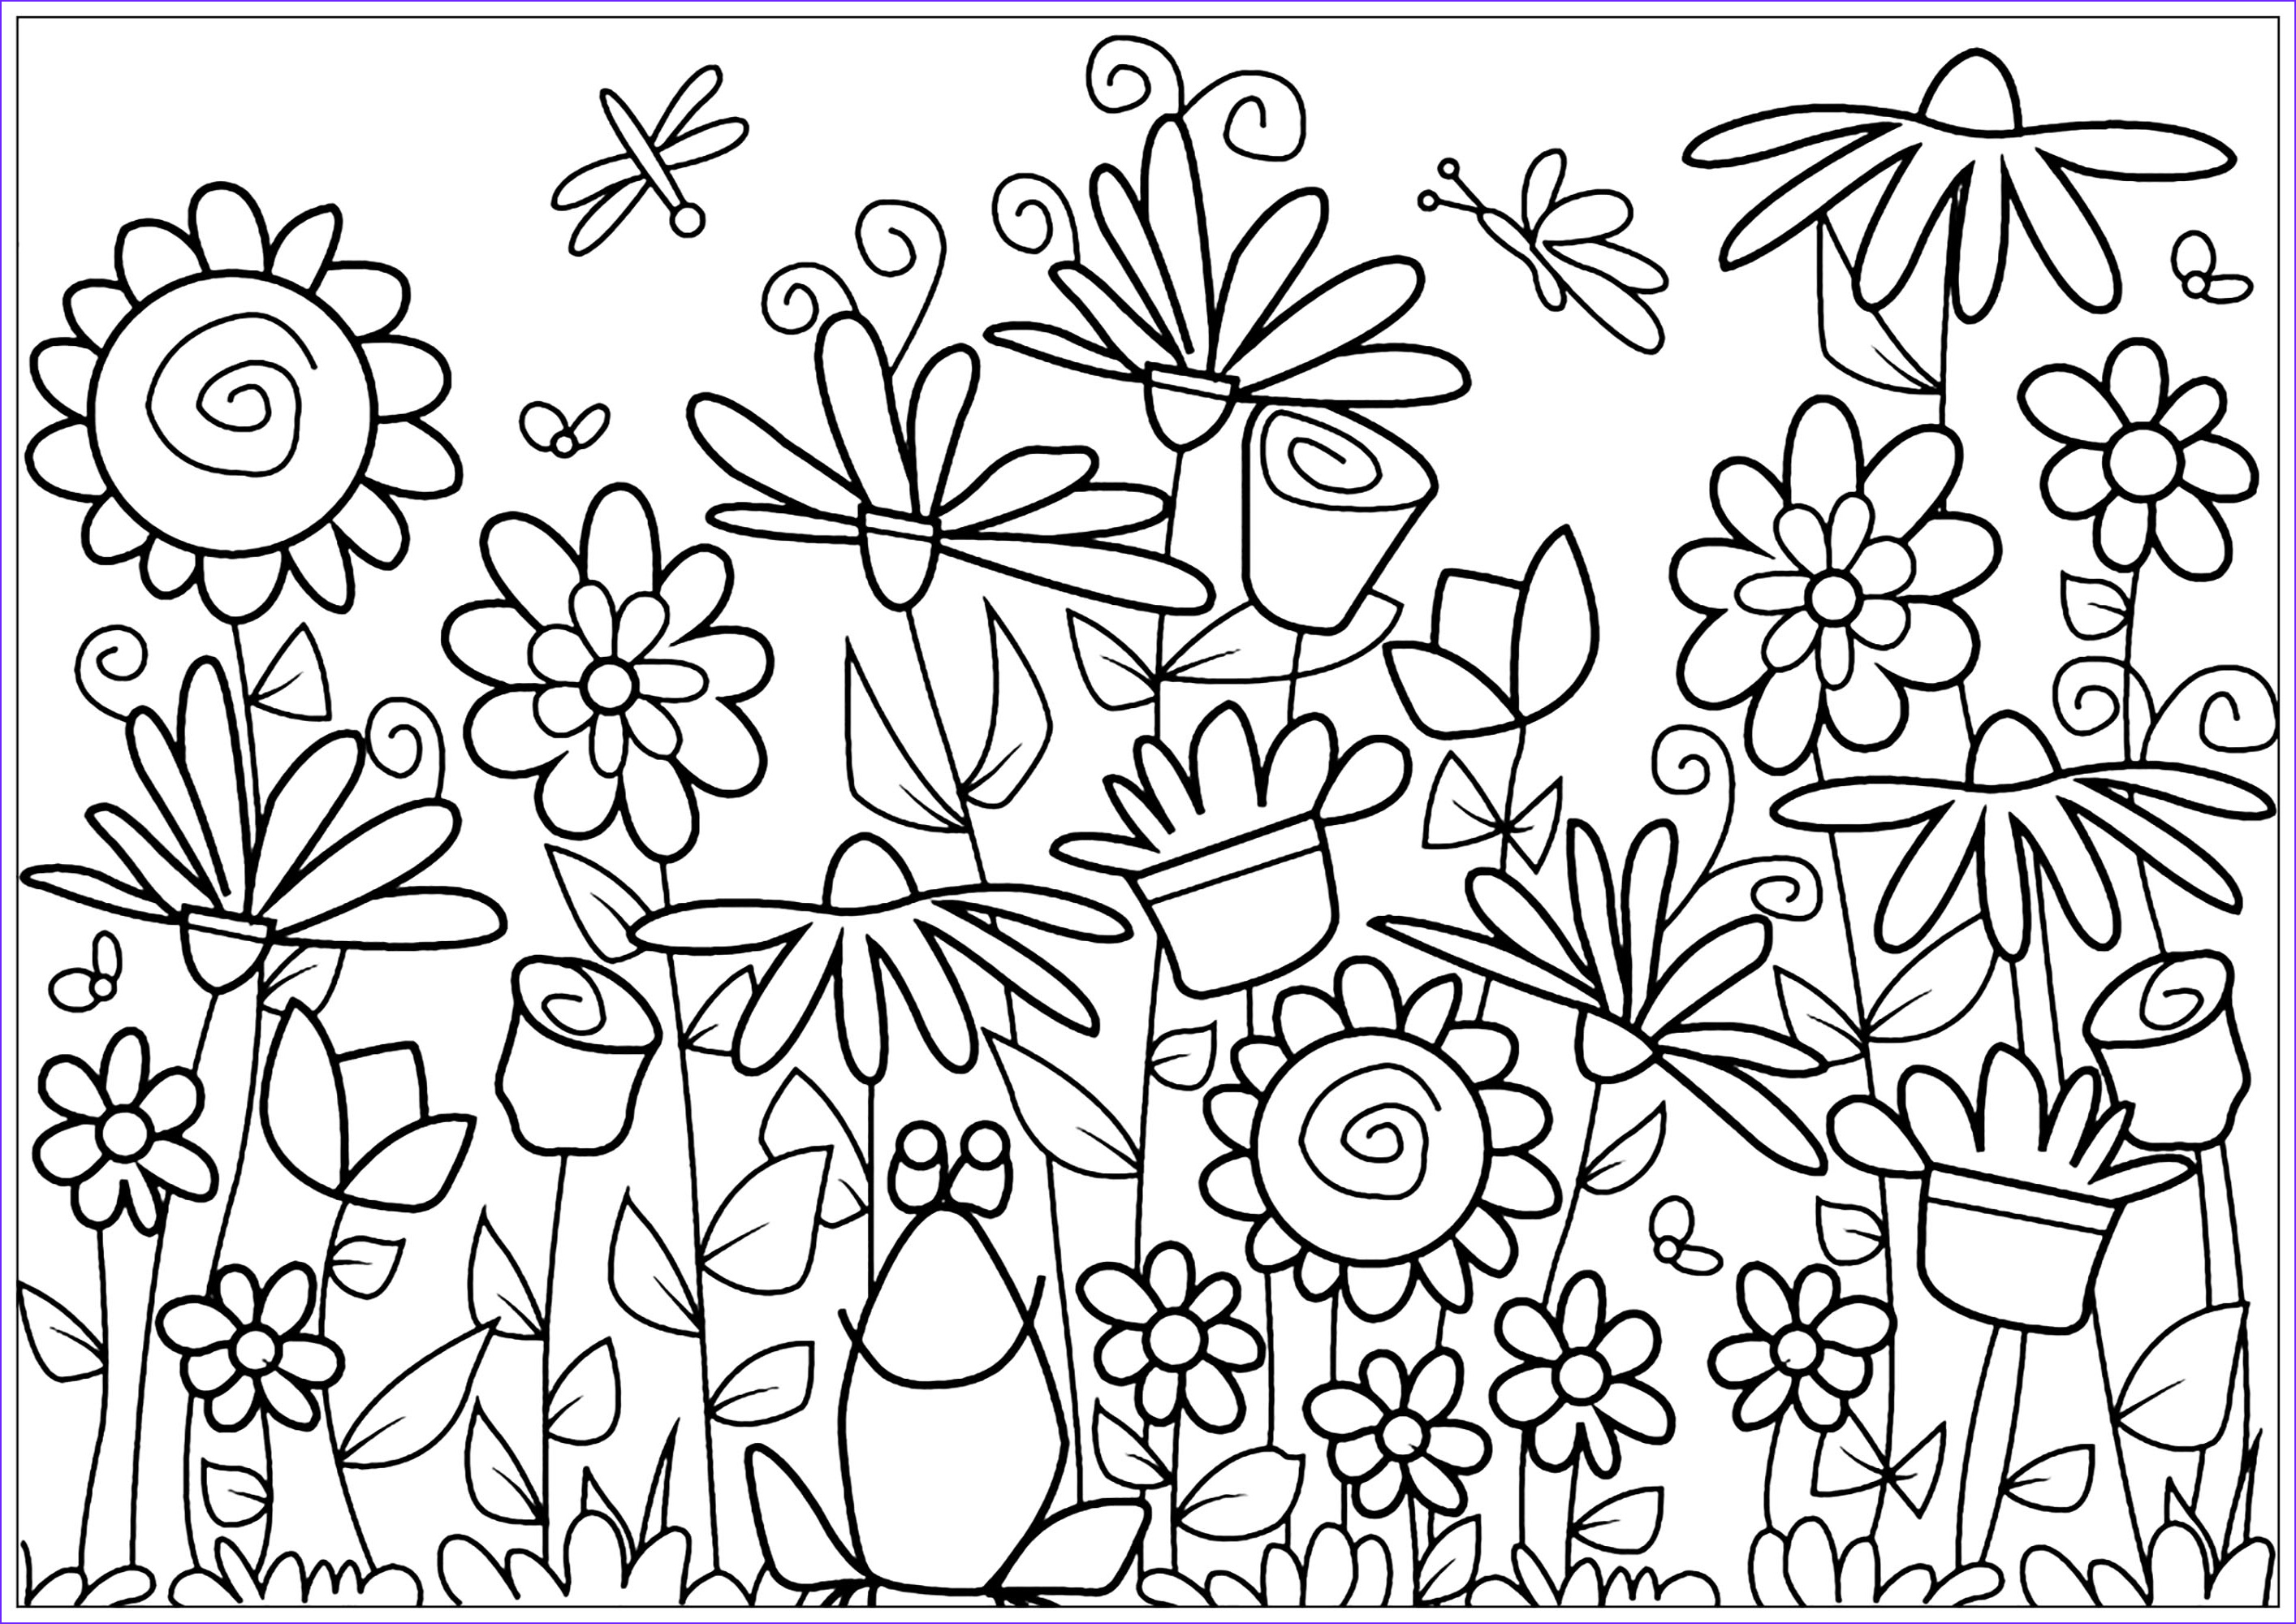 Adult Flower Coloring Pages Beautiful Image Various Flowers with A Cute Frog Flowers Adult Coloring